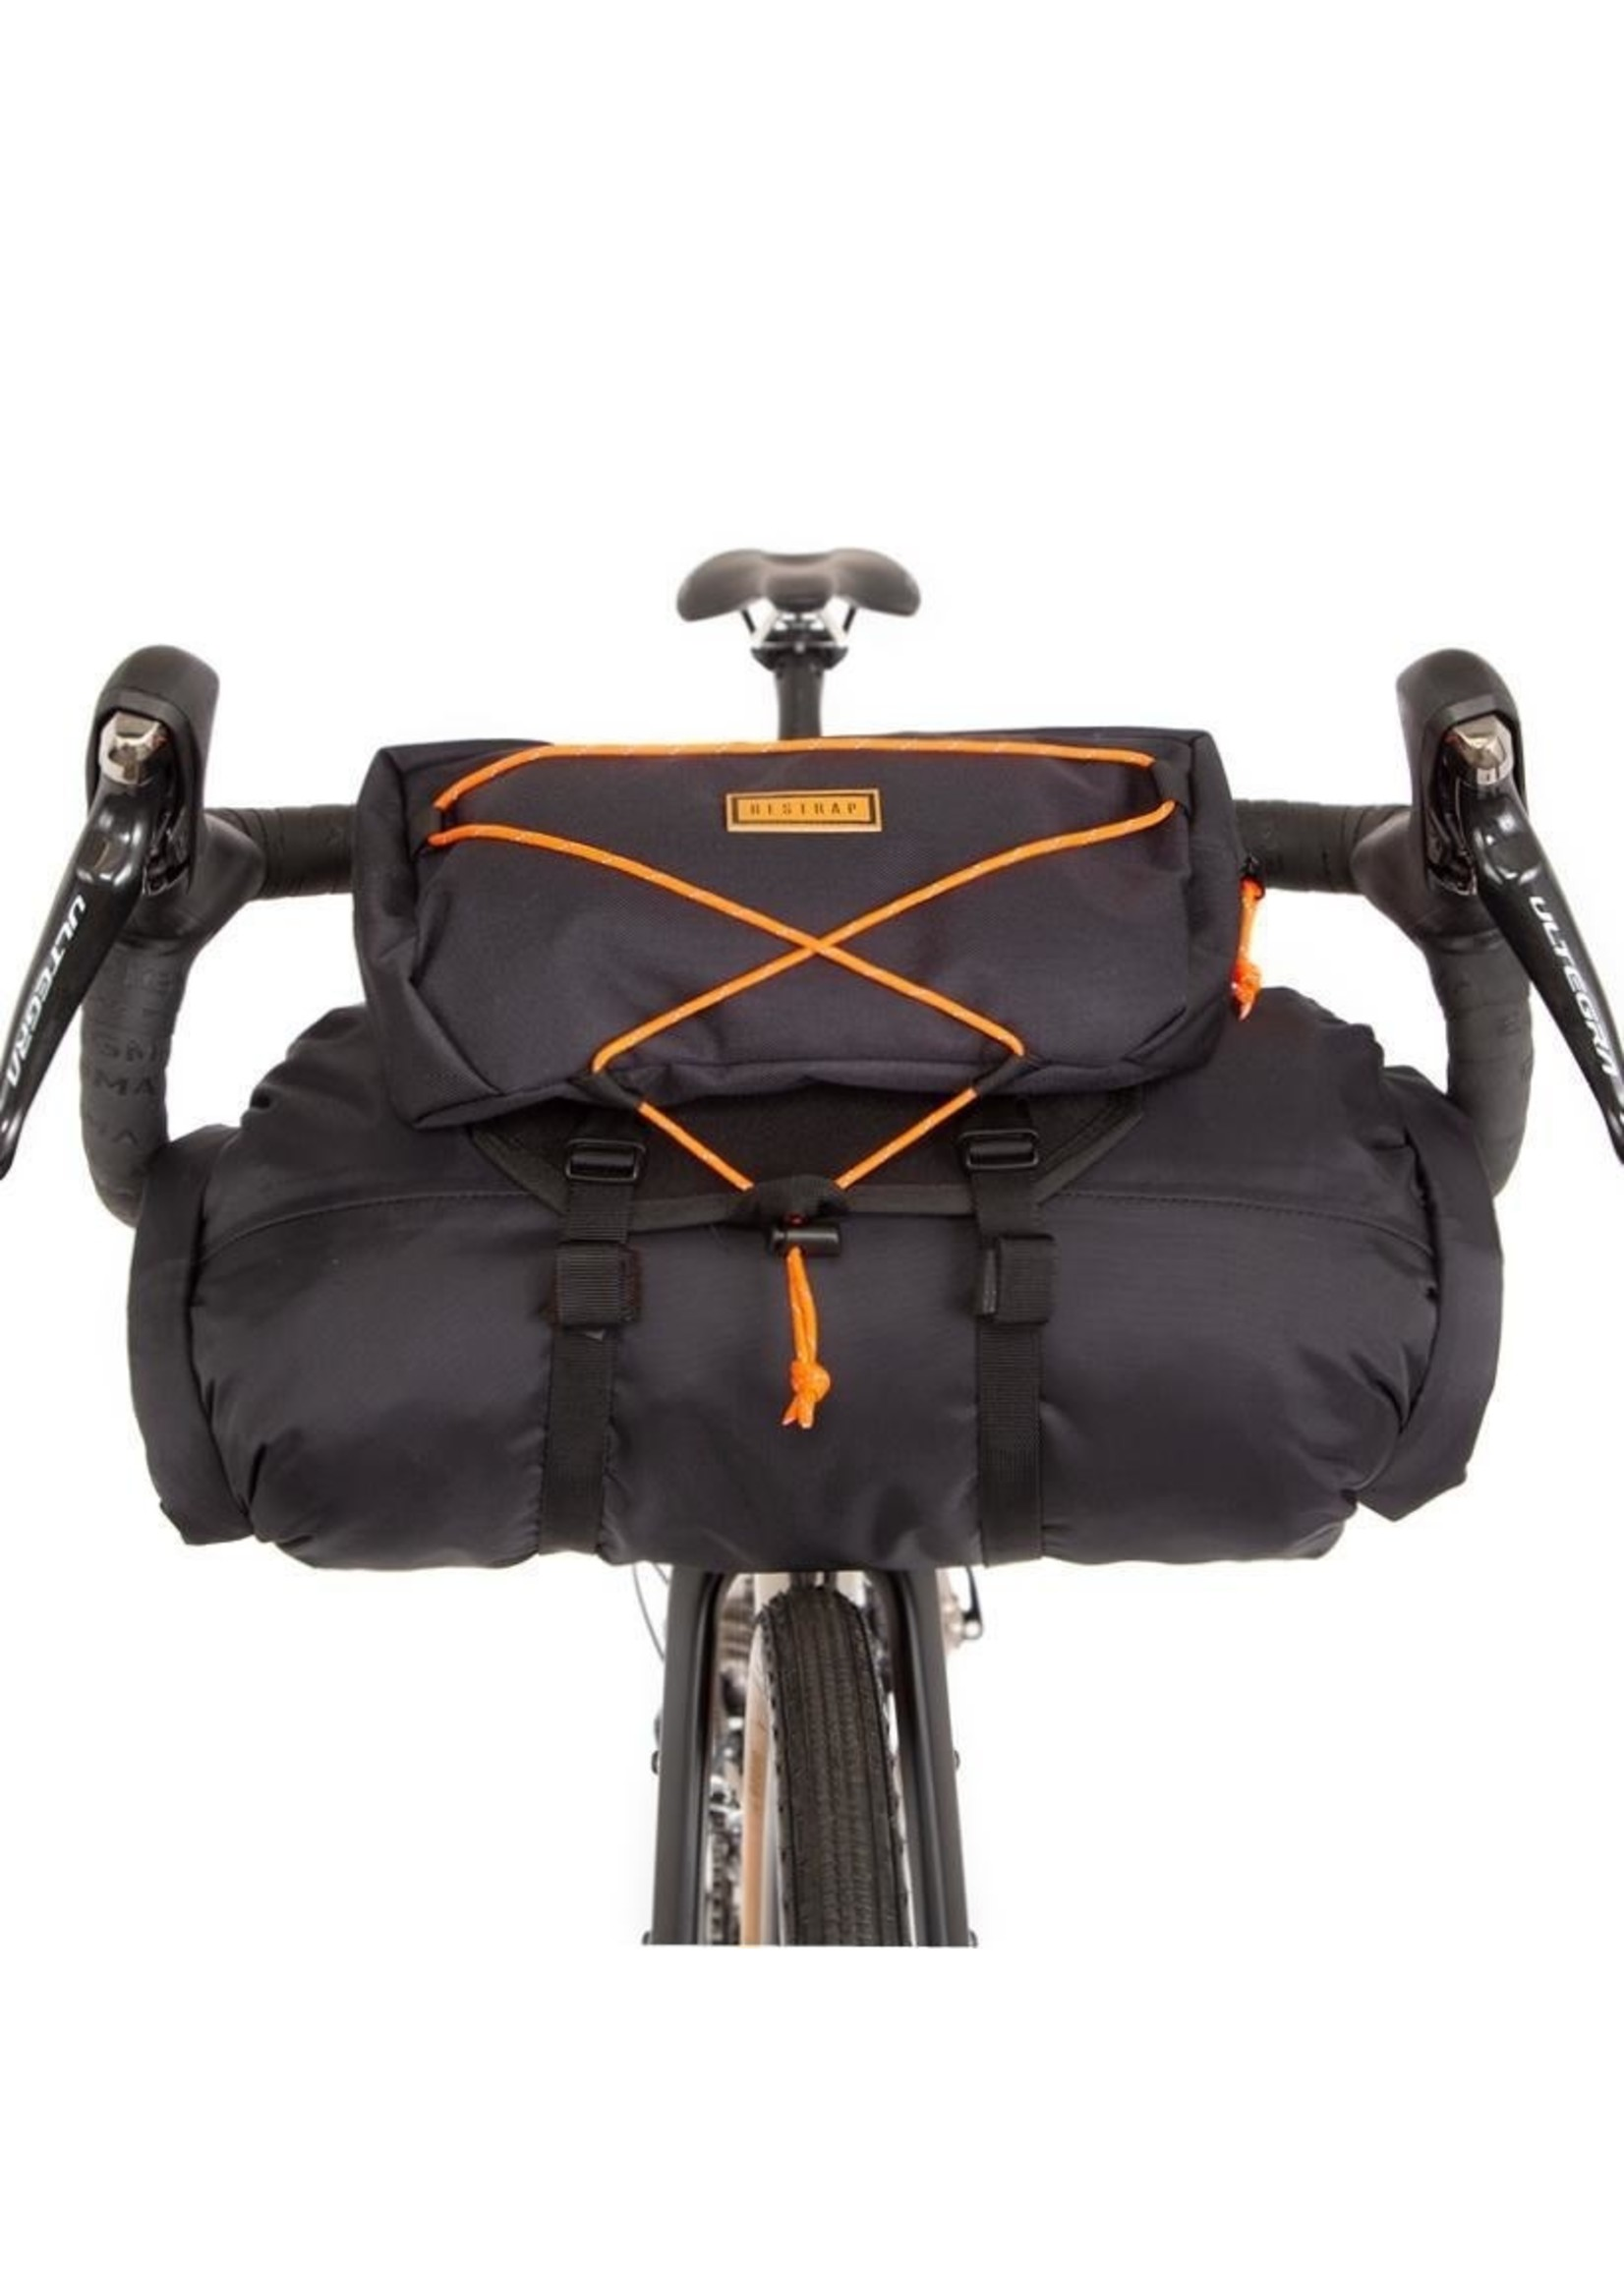 Restrap Restrap Bar Bag, Black/Orange, 14L